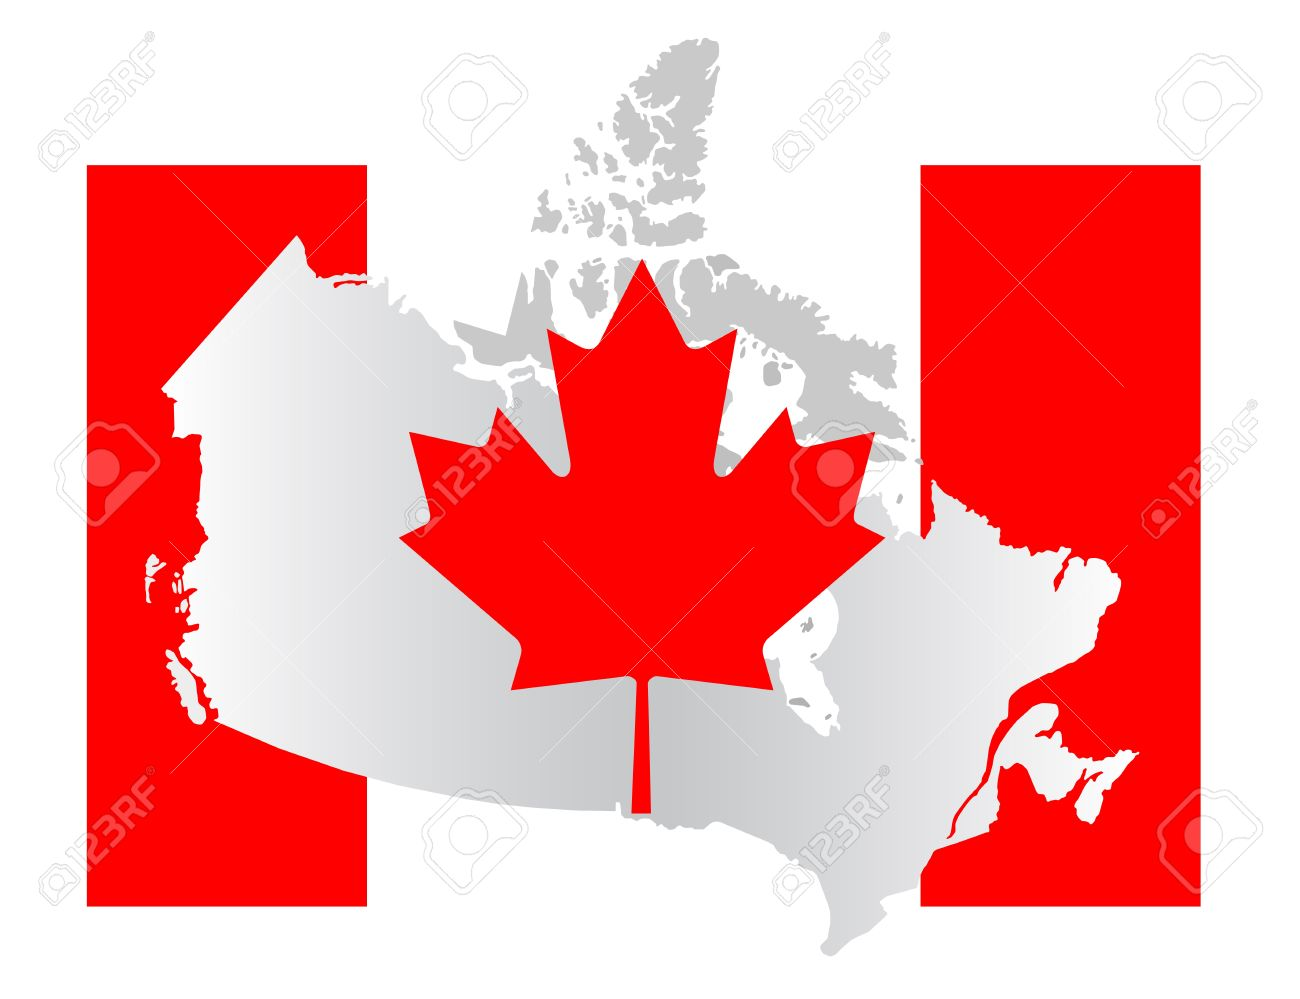 Flag And Map Of Canada Stock Photo Picture And Royalty Free Image - Canada map with flag